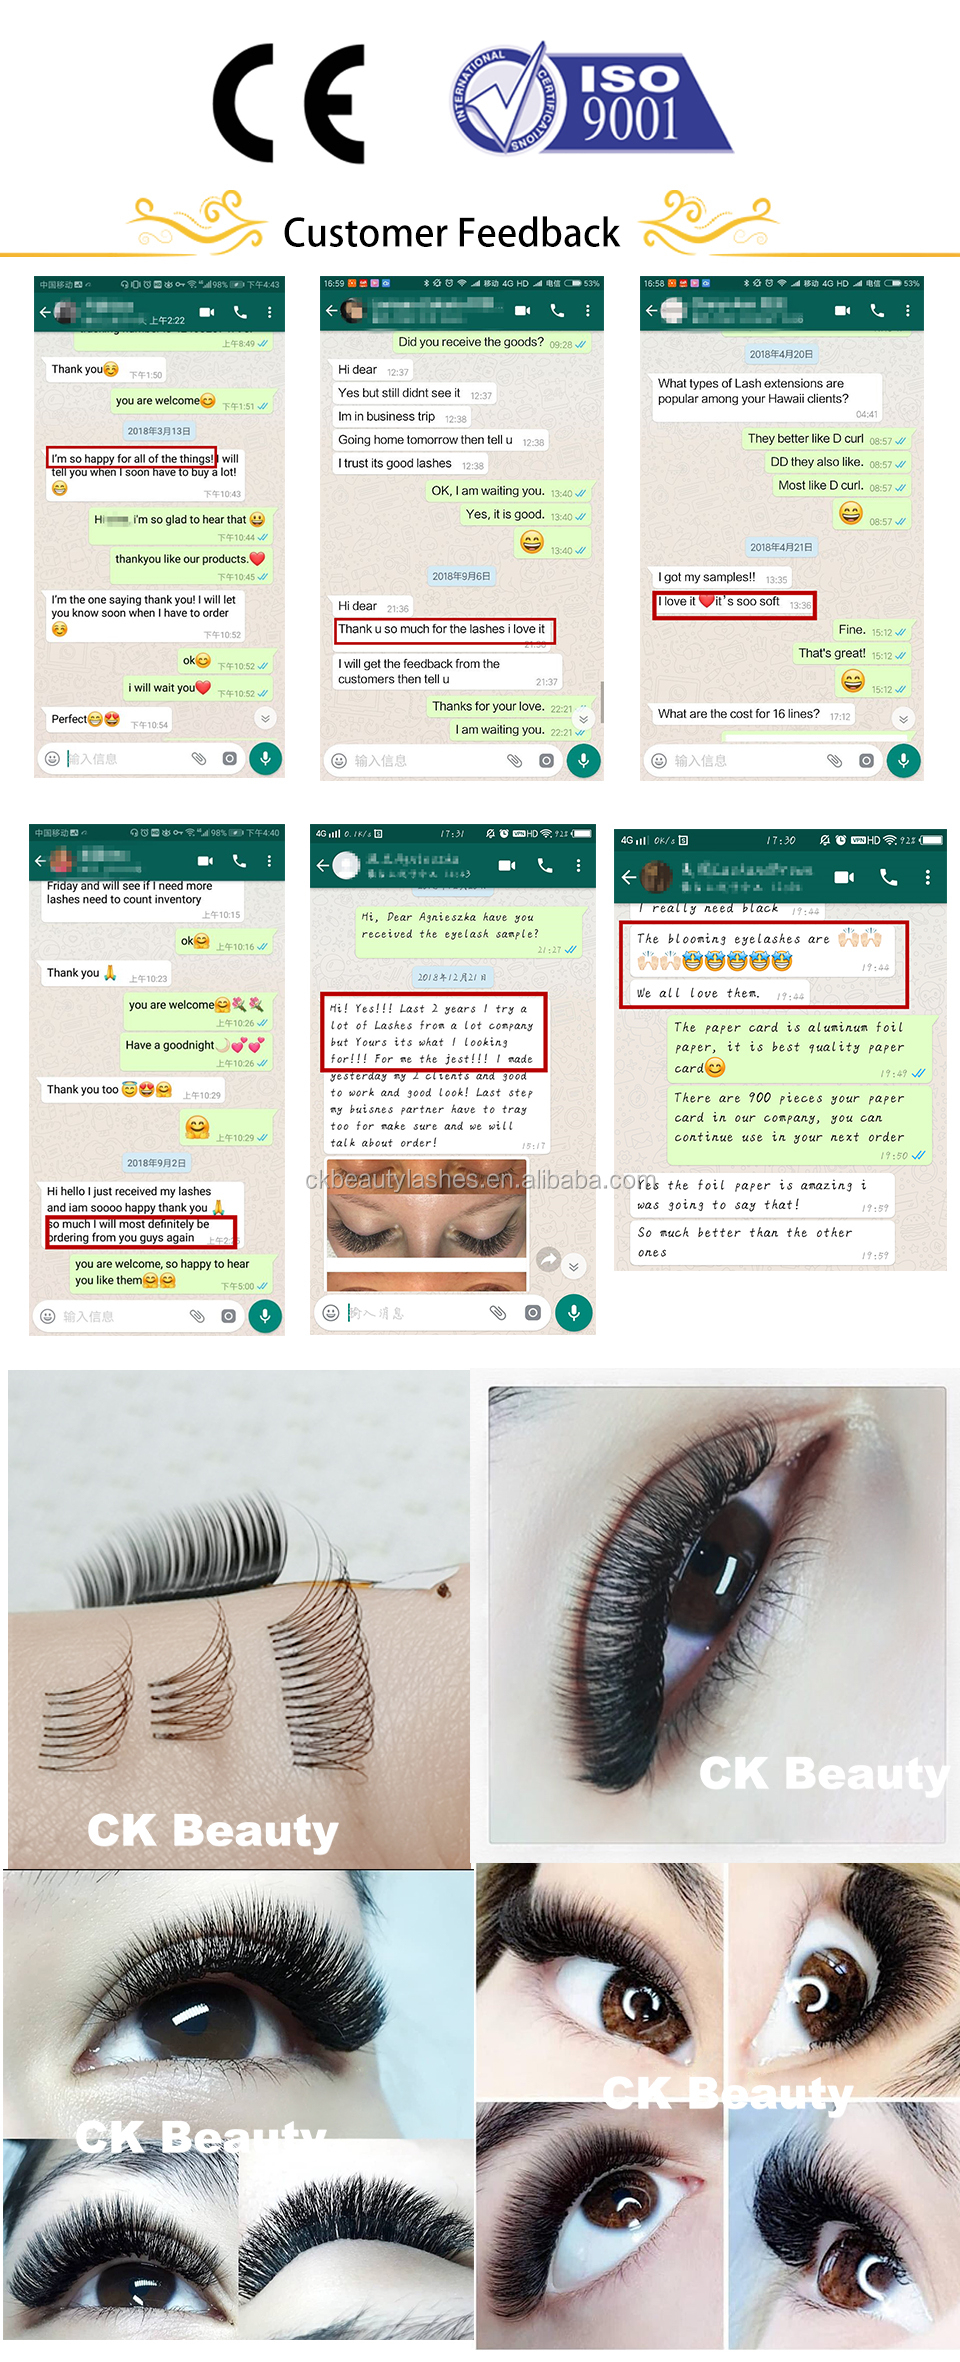 CK Beauty 2019 New Best Selling Gold Gel/ Cream Type Eyelash Flue Remover Made By Manufacture in Korea/Eyelash Extension Protein